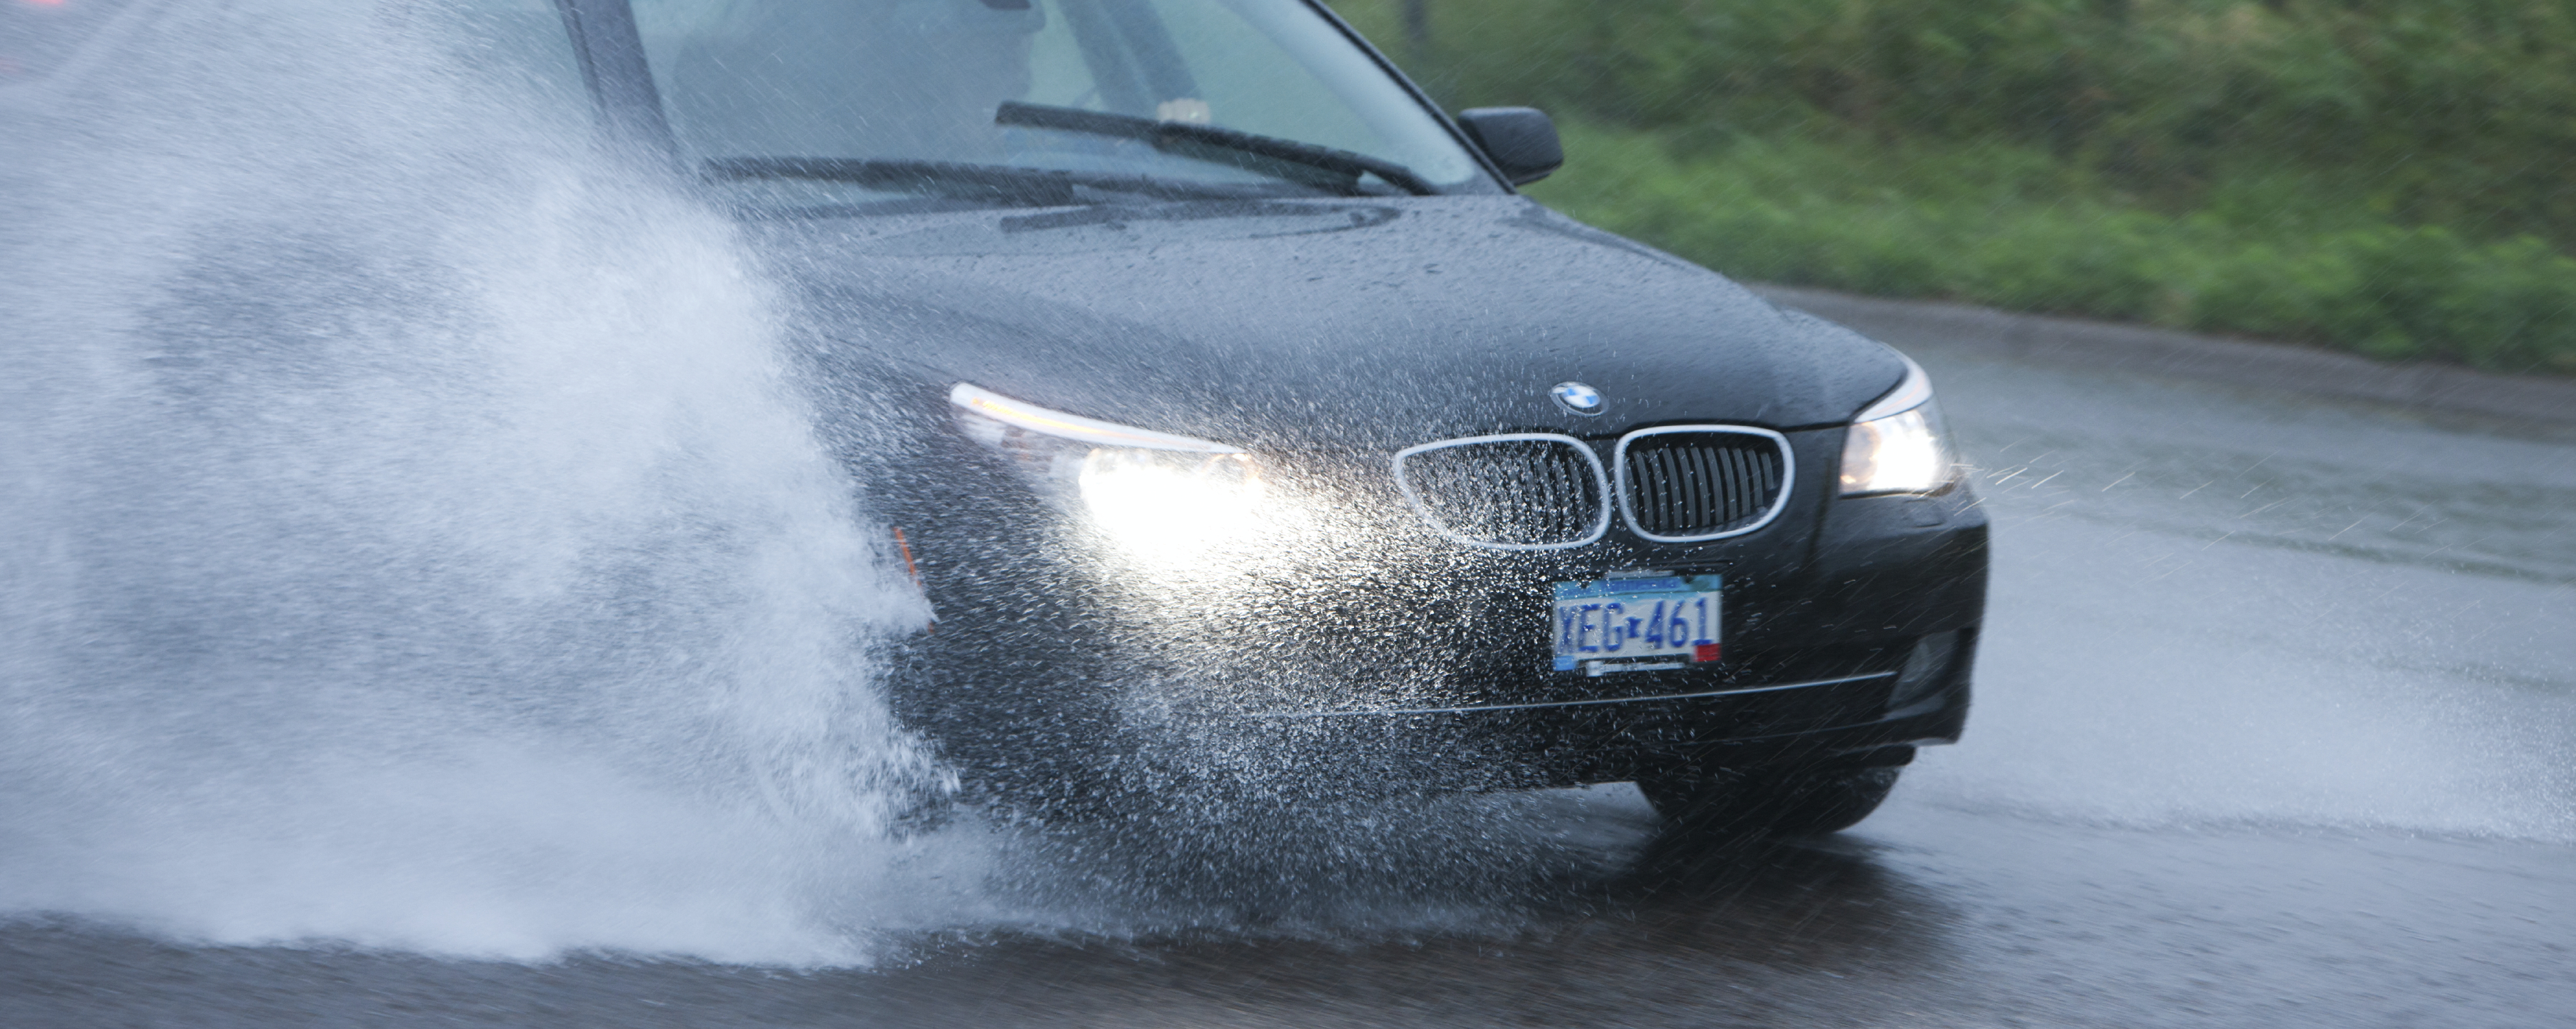 SUBMERGED BMW NEEDED RESCUING AFTER BEING CAUGHT IN FLASH FLOOD